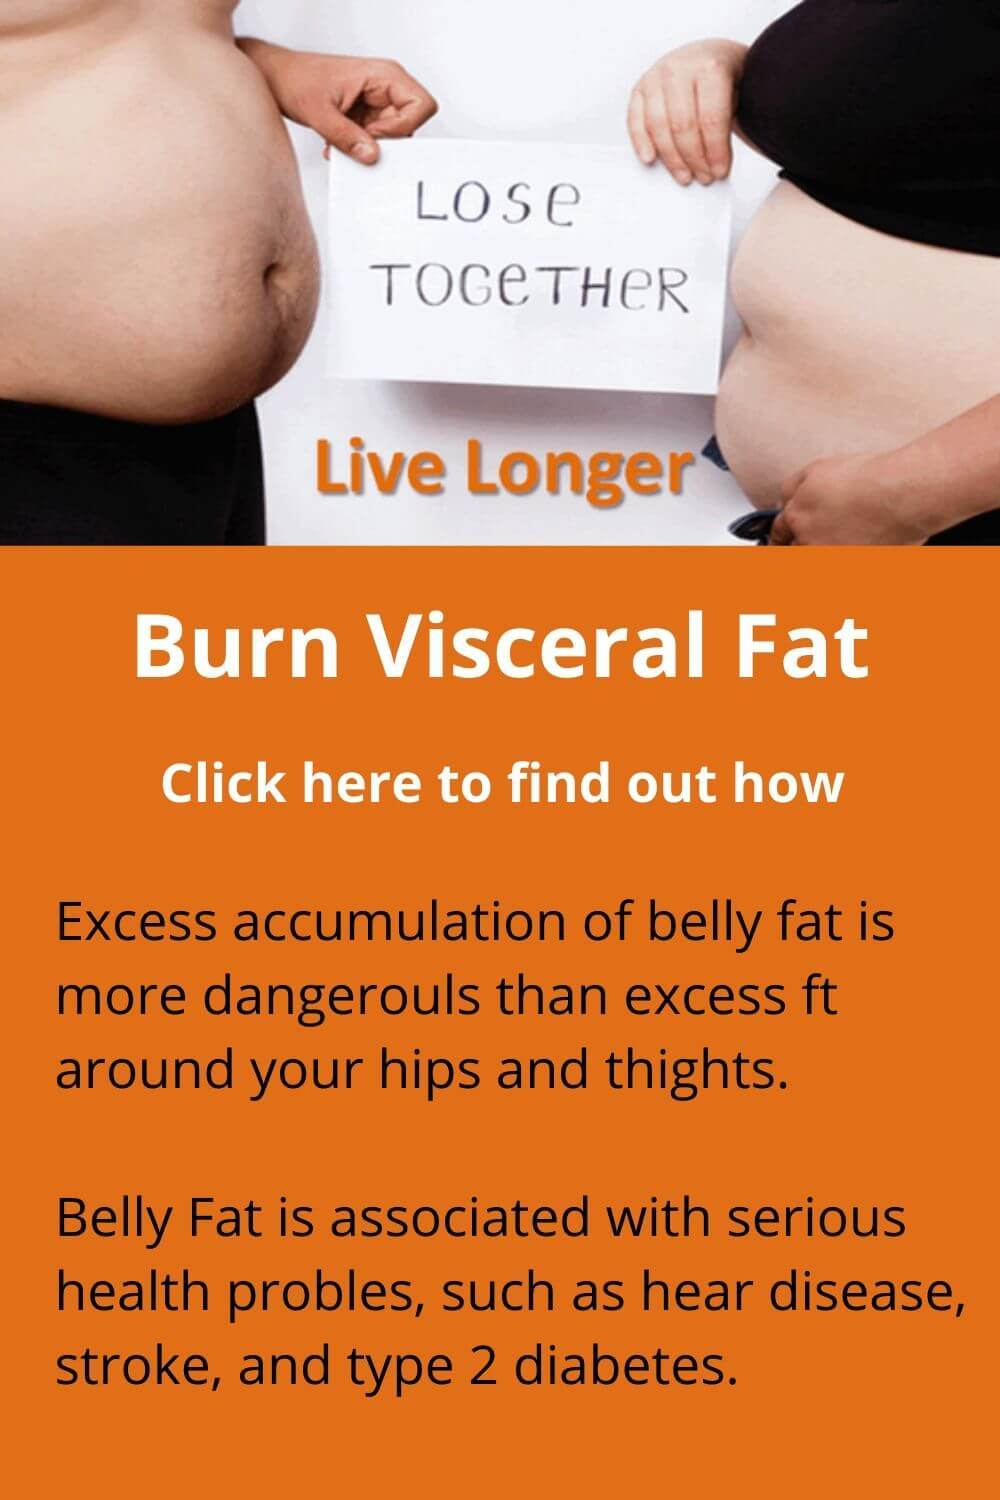 Burn Viscerel fat - why it is important